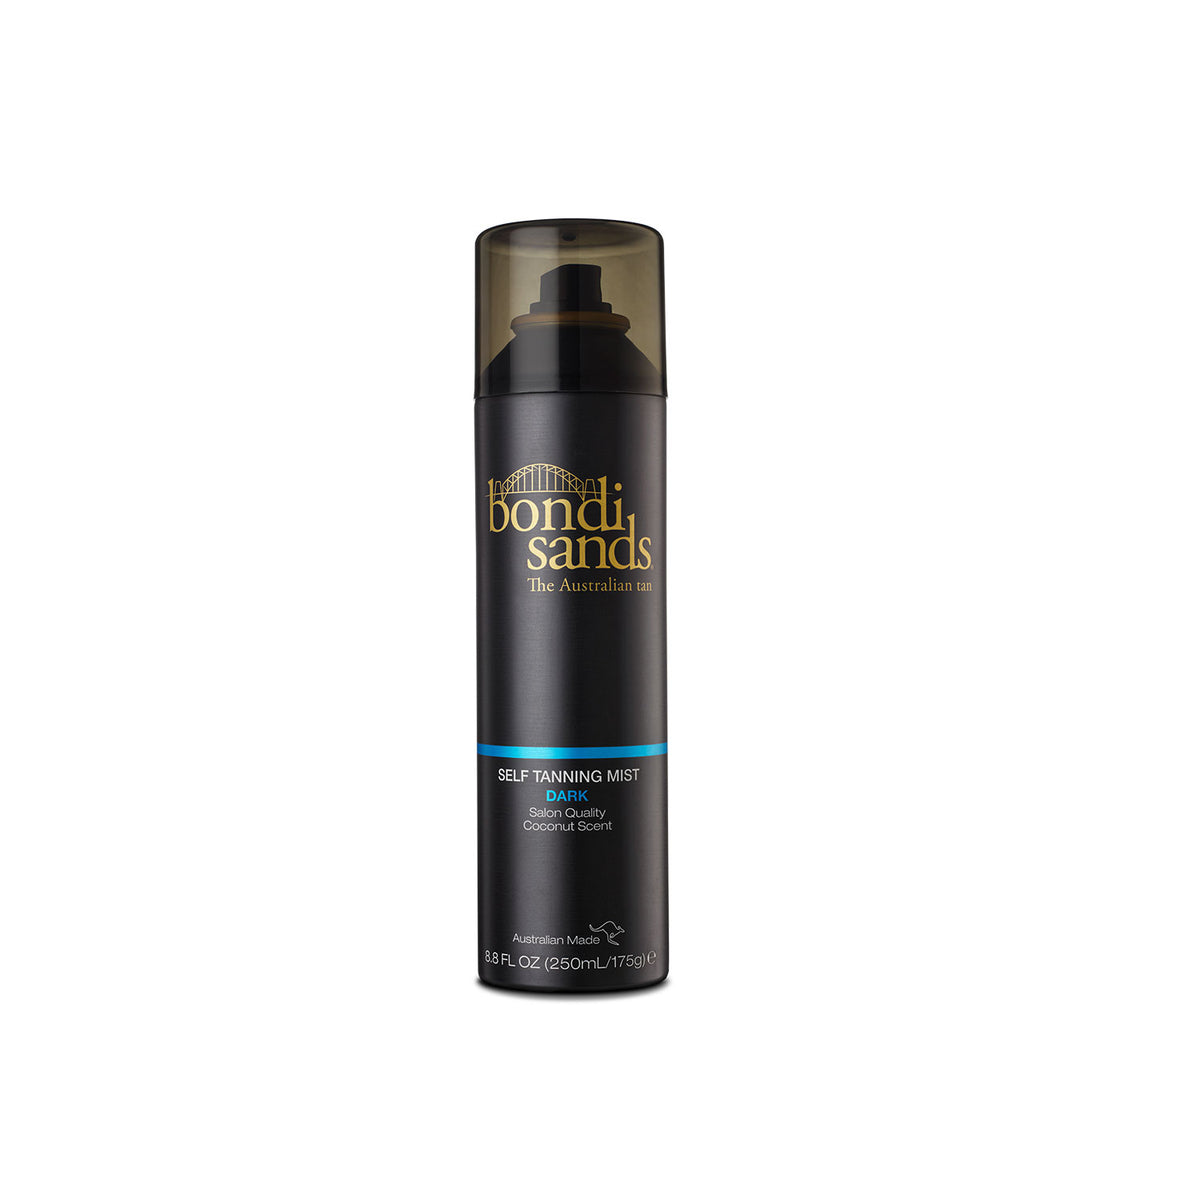 Bondi Sands Self Tan Mist Dark 250ml